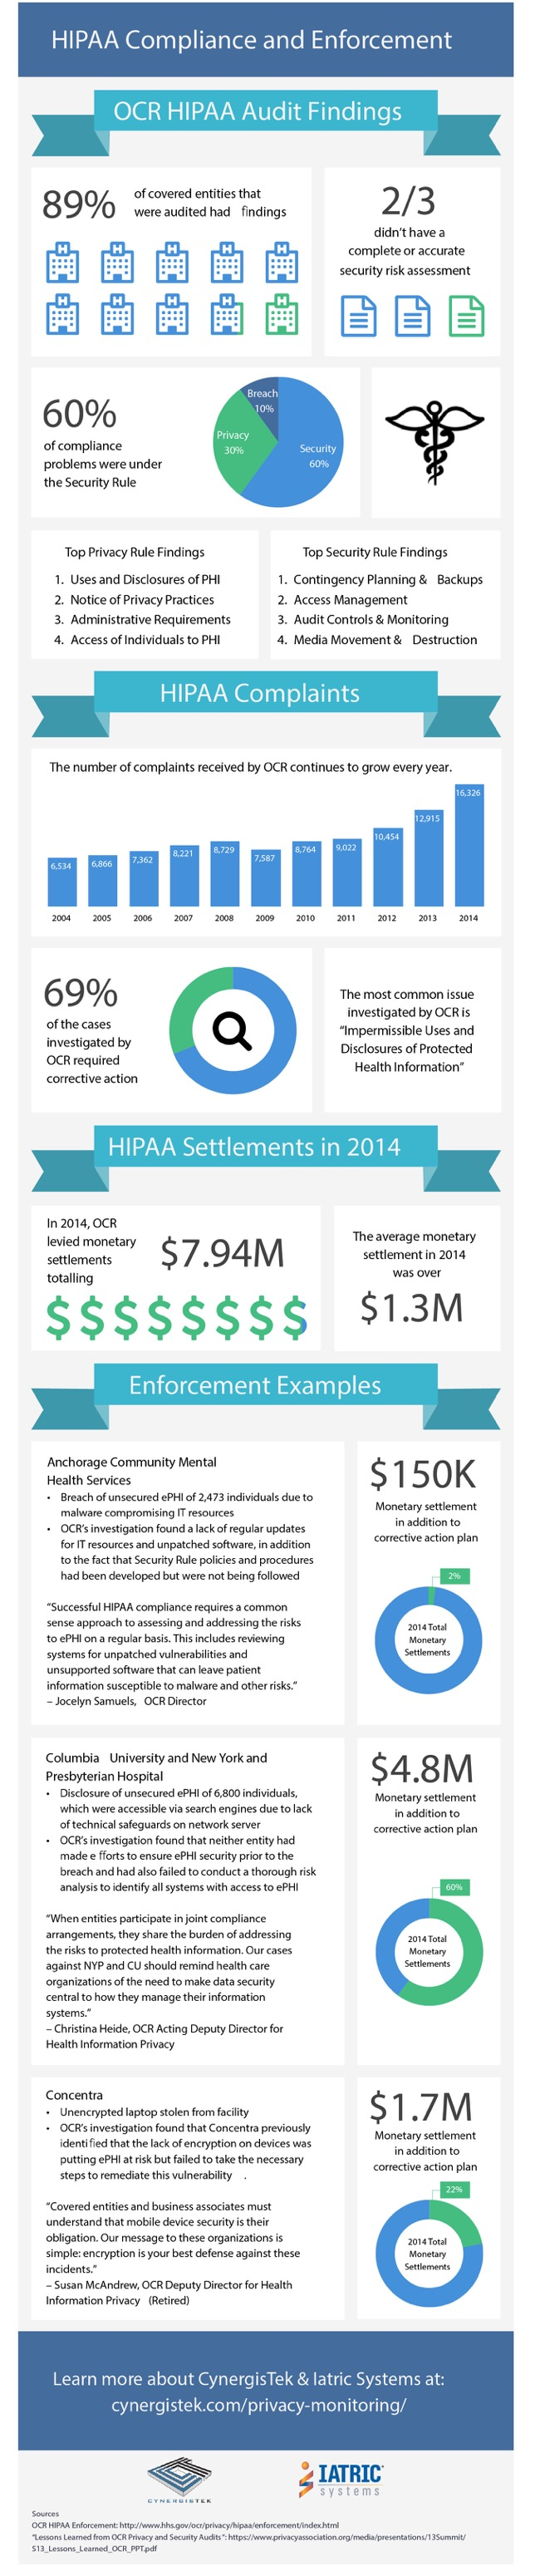 HIPAA Compliance & Enforcement and OCR HIPAA Audit Findings Infographic